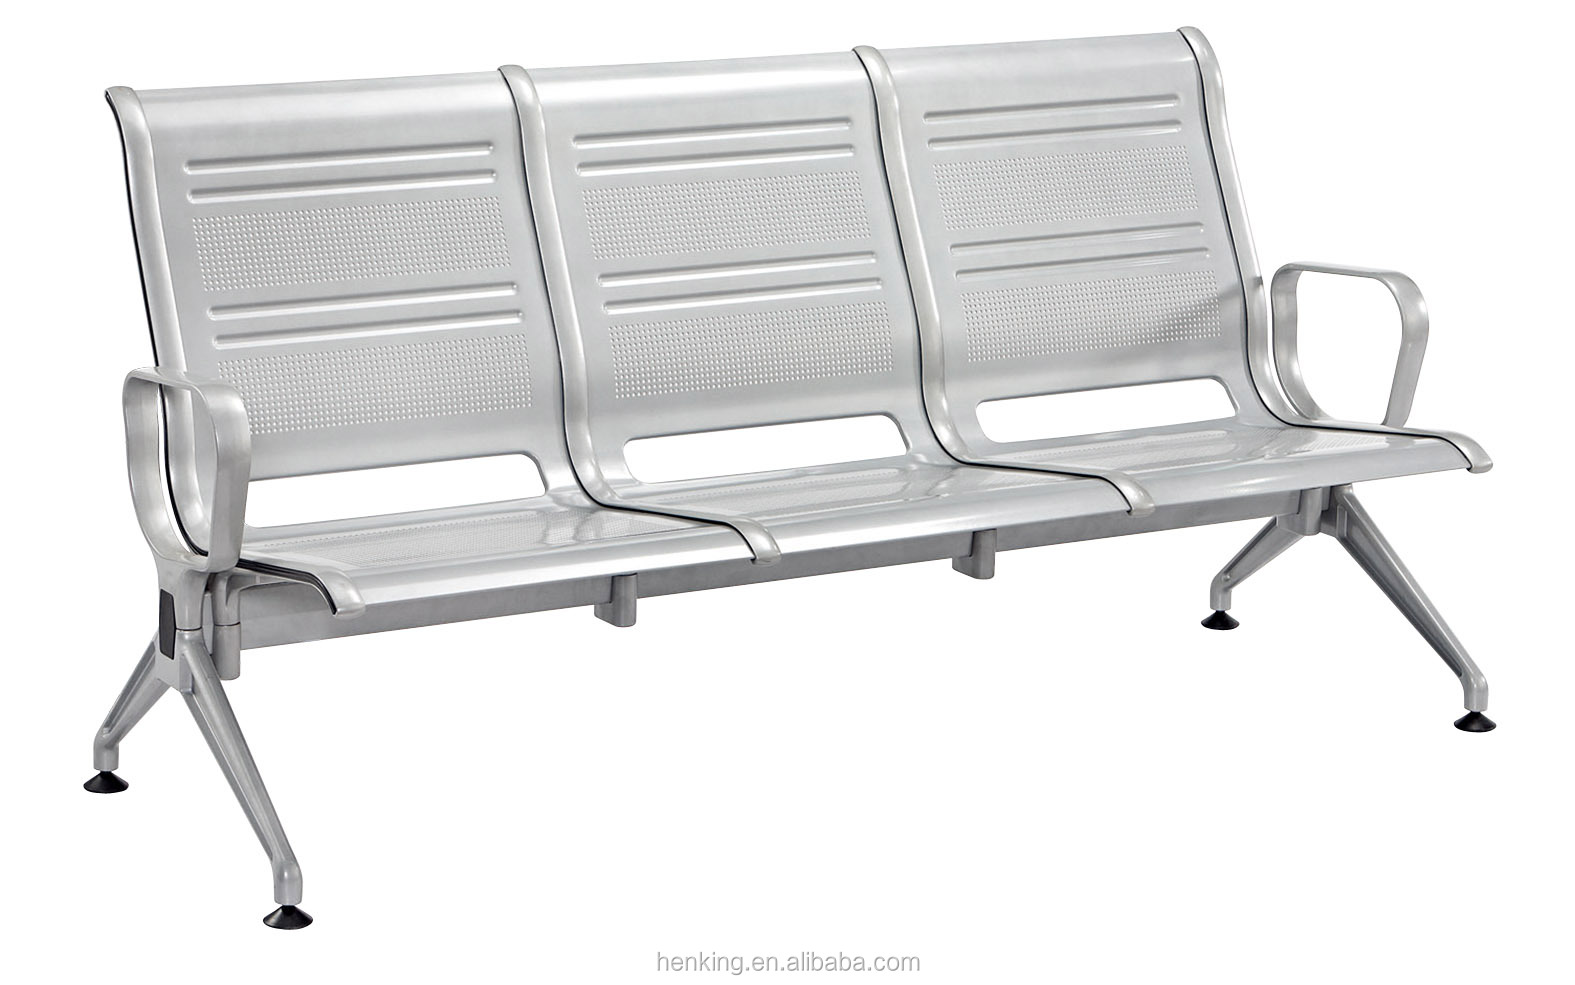 Waiting Room Chairs Cheap Henking High Quality 3 Seater Stainless Steel Airport